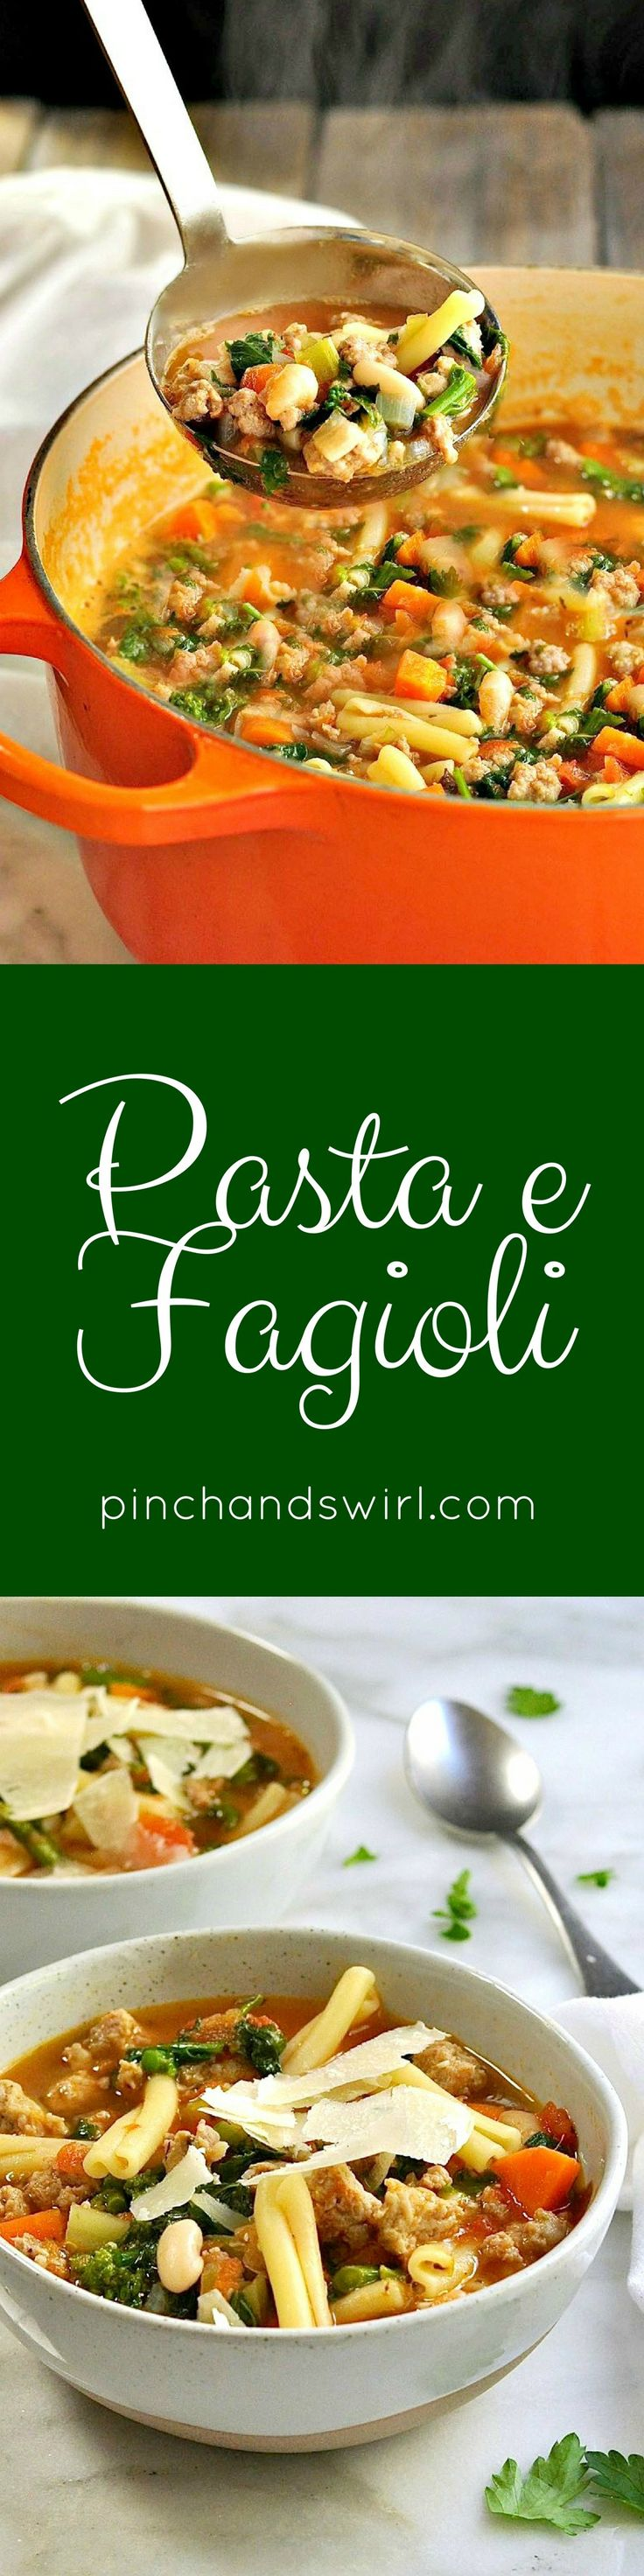 Pasta e Fagioli soup began in Italy as a simple dish made with inexpensive ingredients, as so many of the country's most delicious dishes are. After trying several variations, I've settled on the Pasta Fagioli recipe that's perfect for us with a couple ki